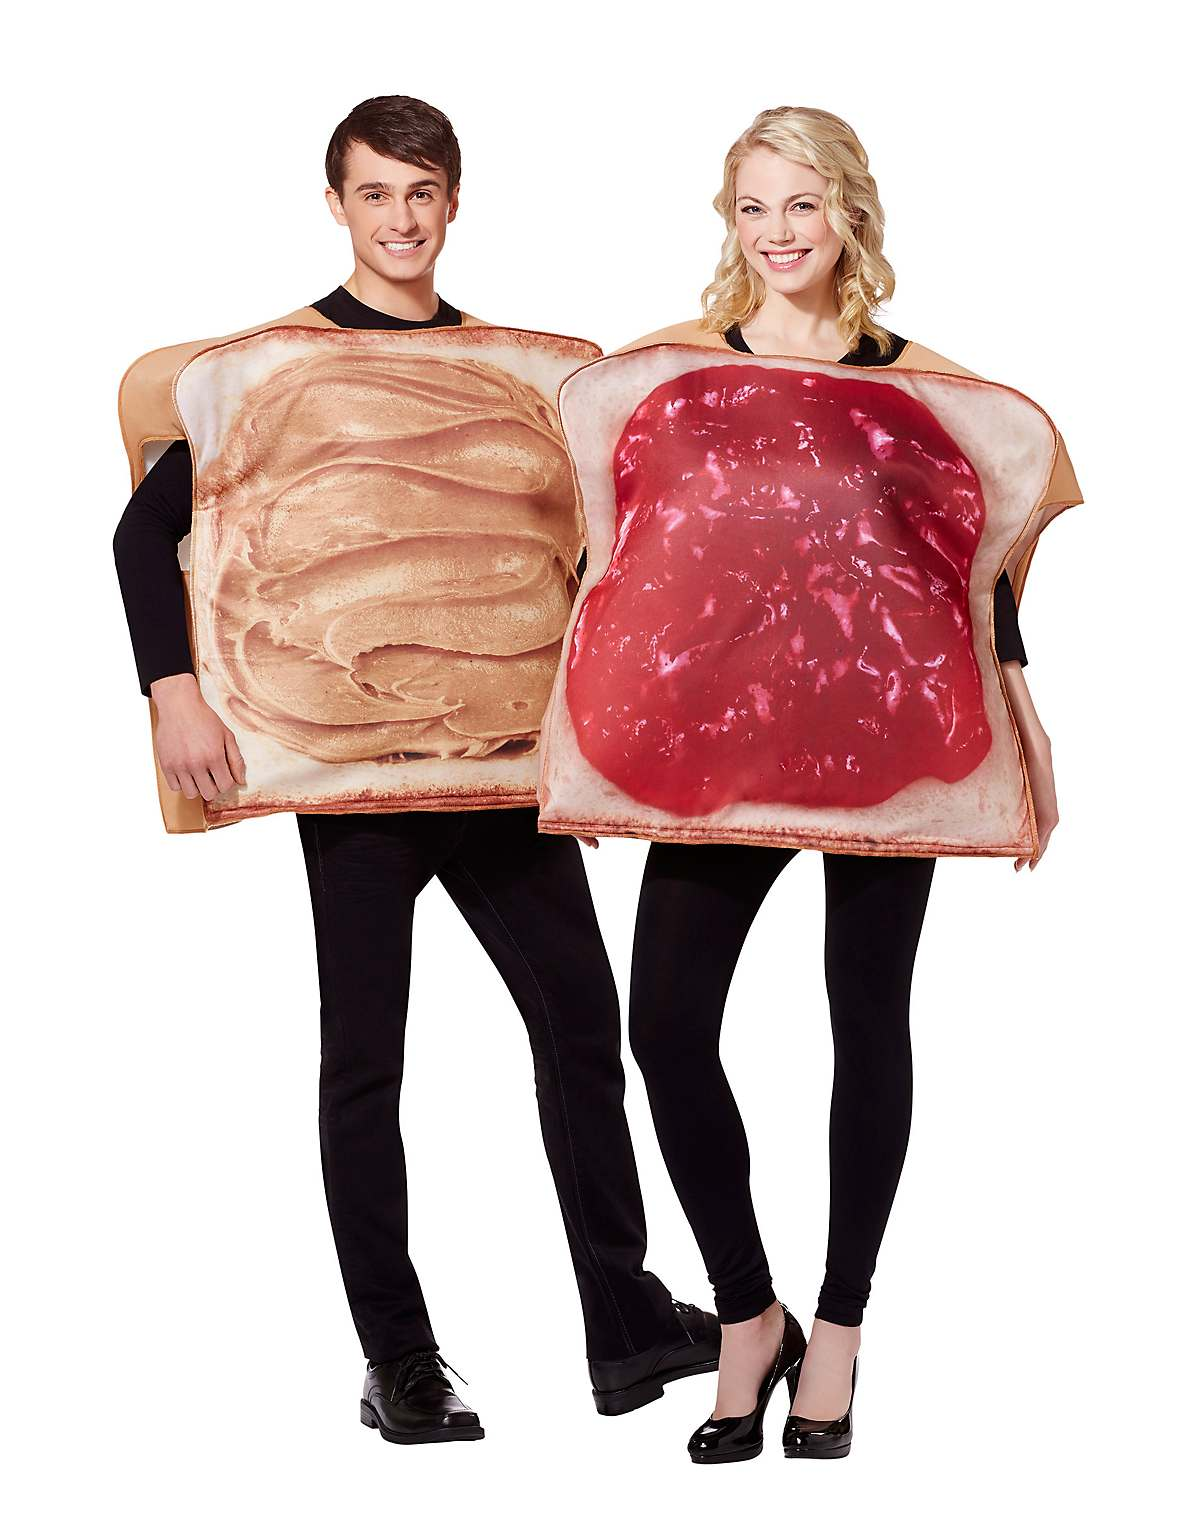 PB & J Costume | Peanut Butter and Jelly Costume